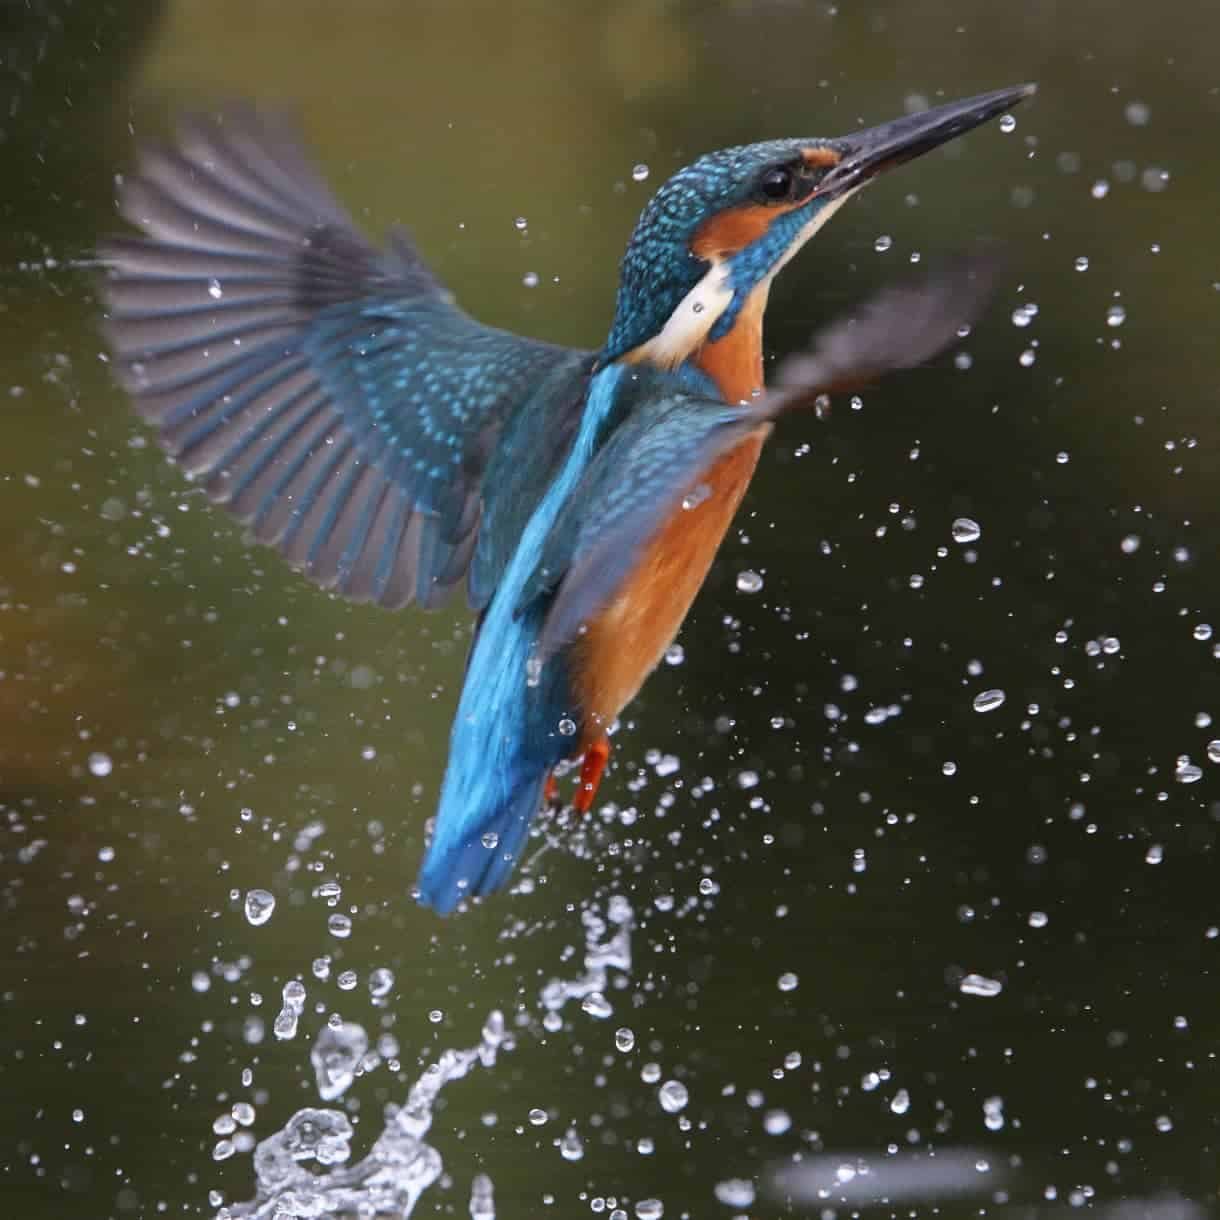 All about the Kingfisher